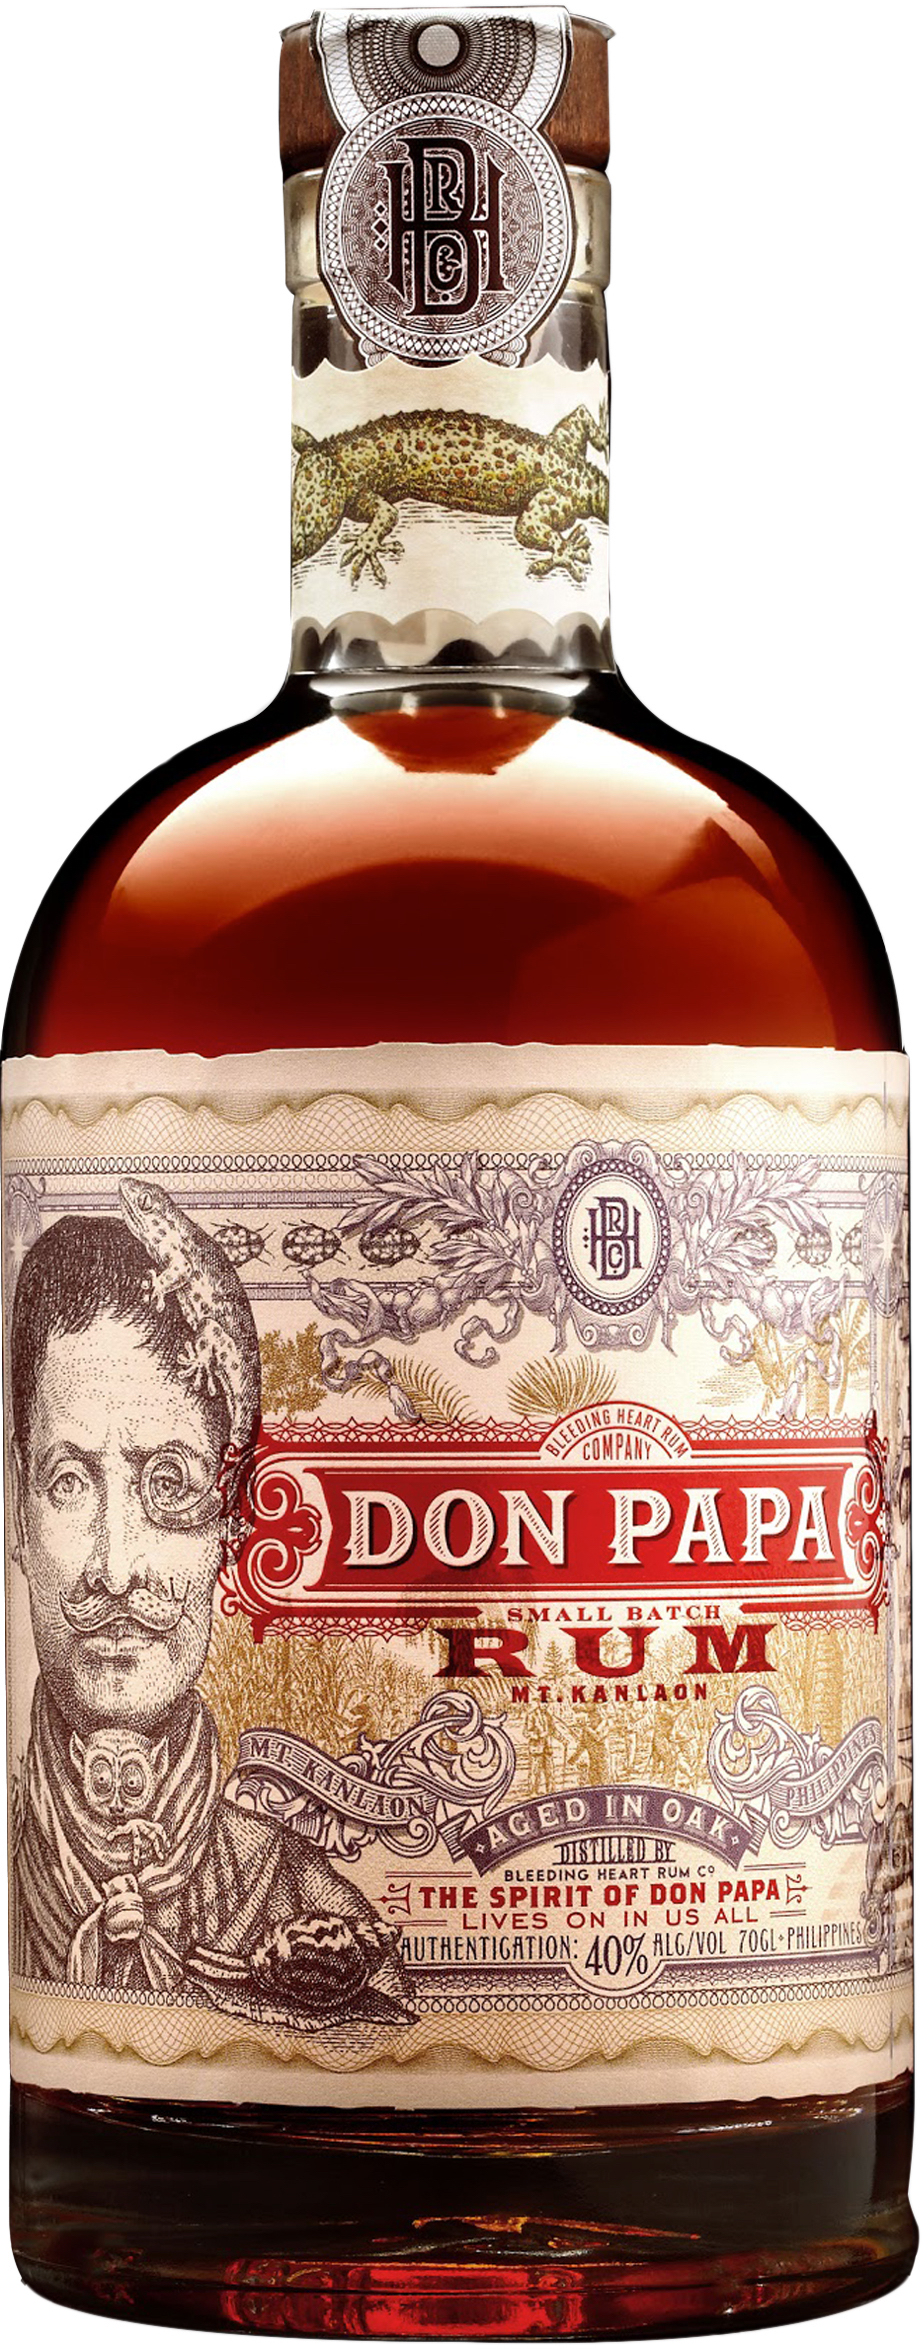 Don Papa Small Batch Oak Aged Rum 7 year old